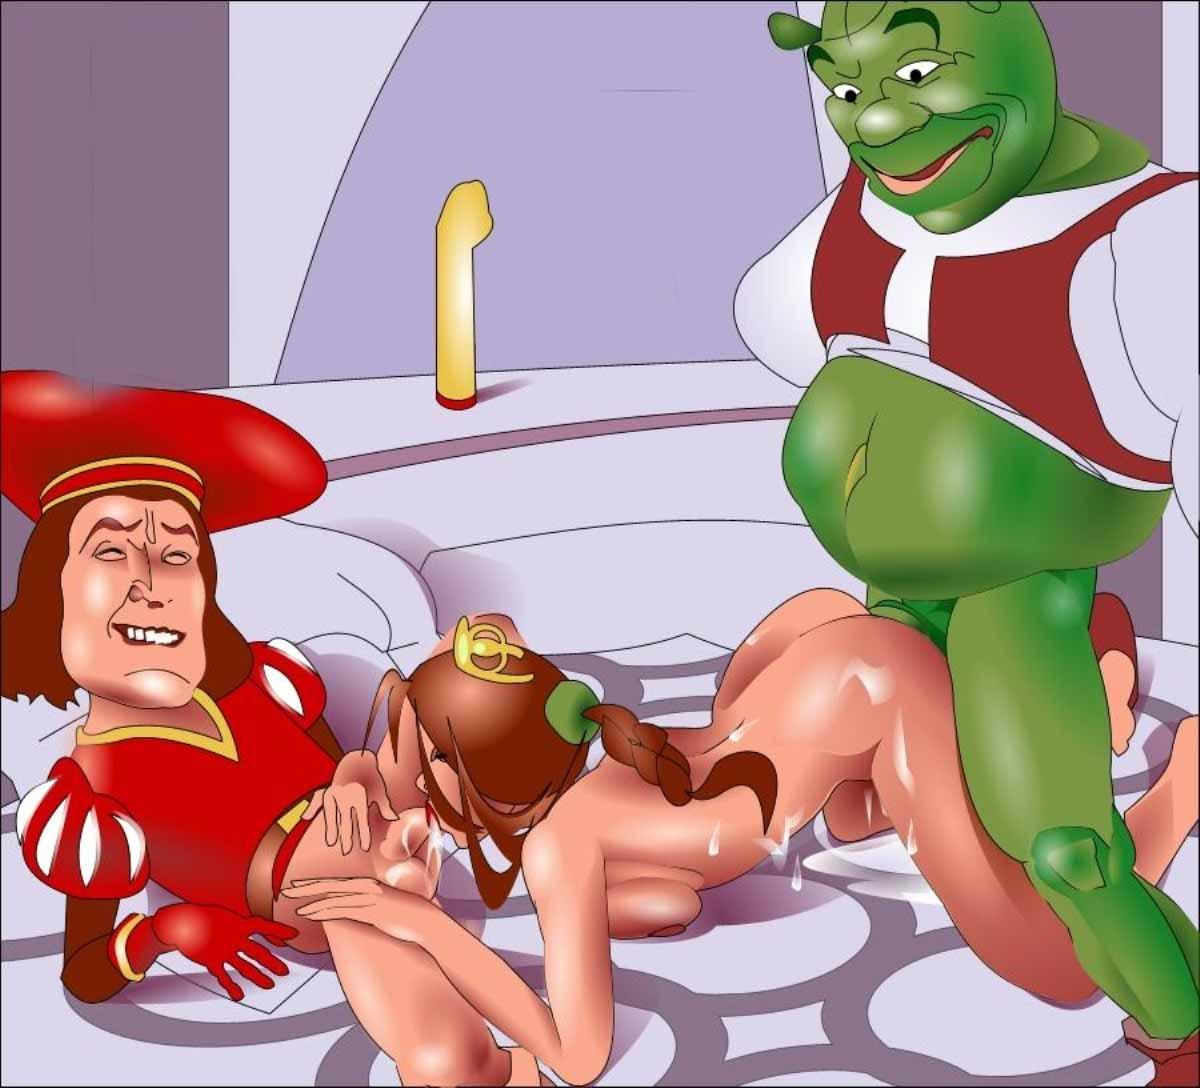 Shrek sex porn photo softcore girlfriends